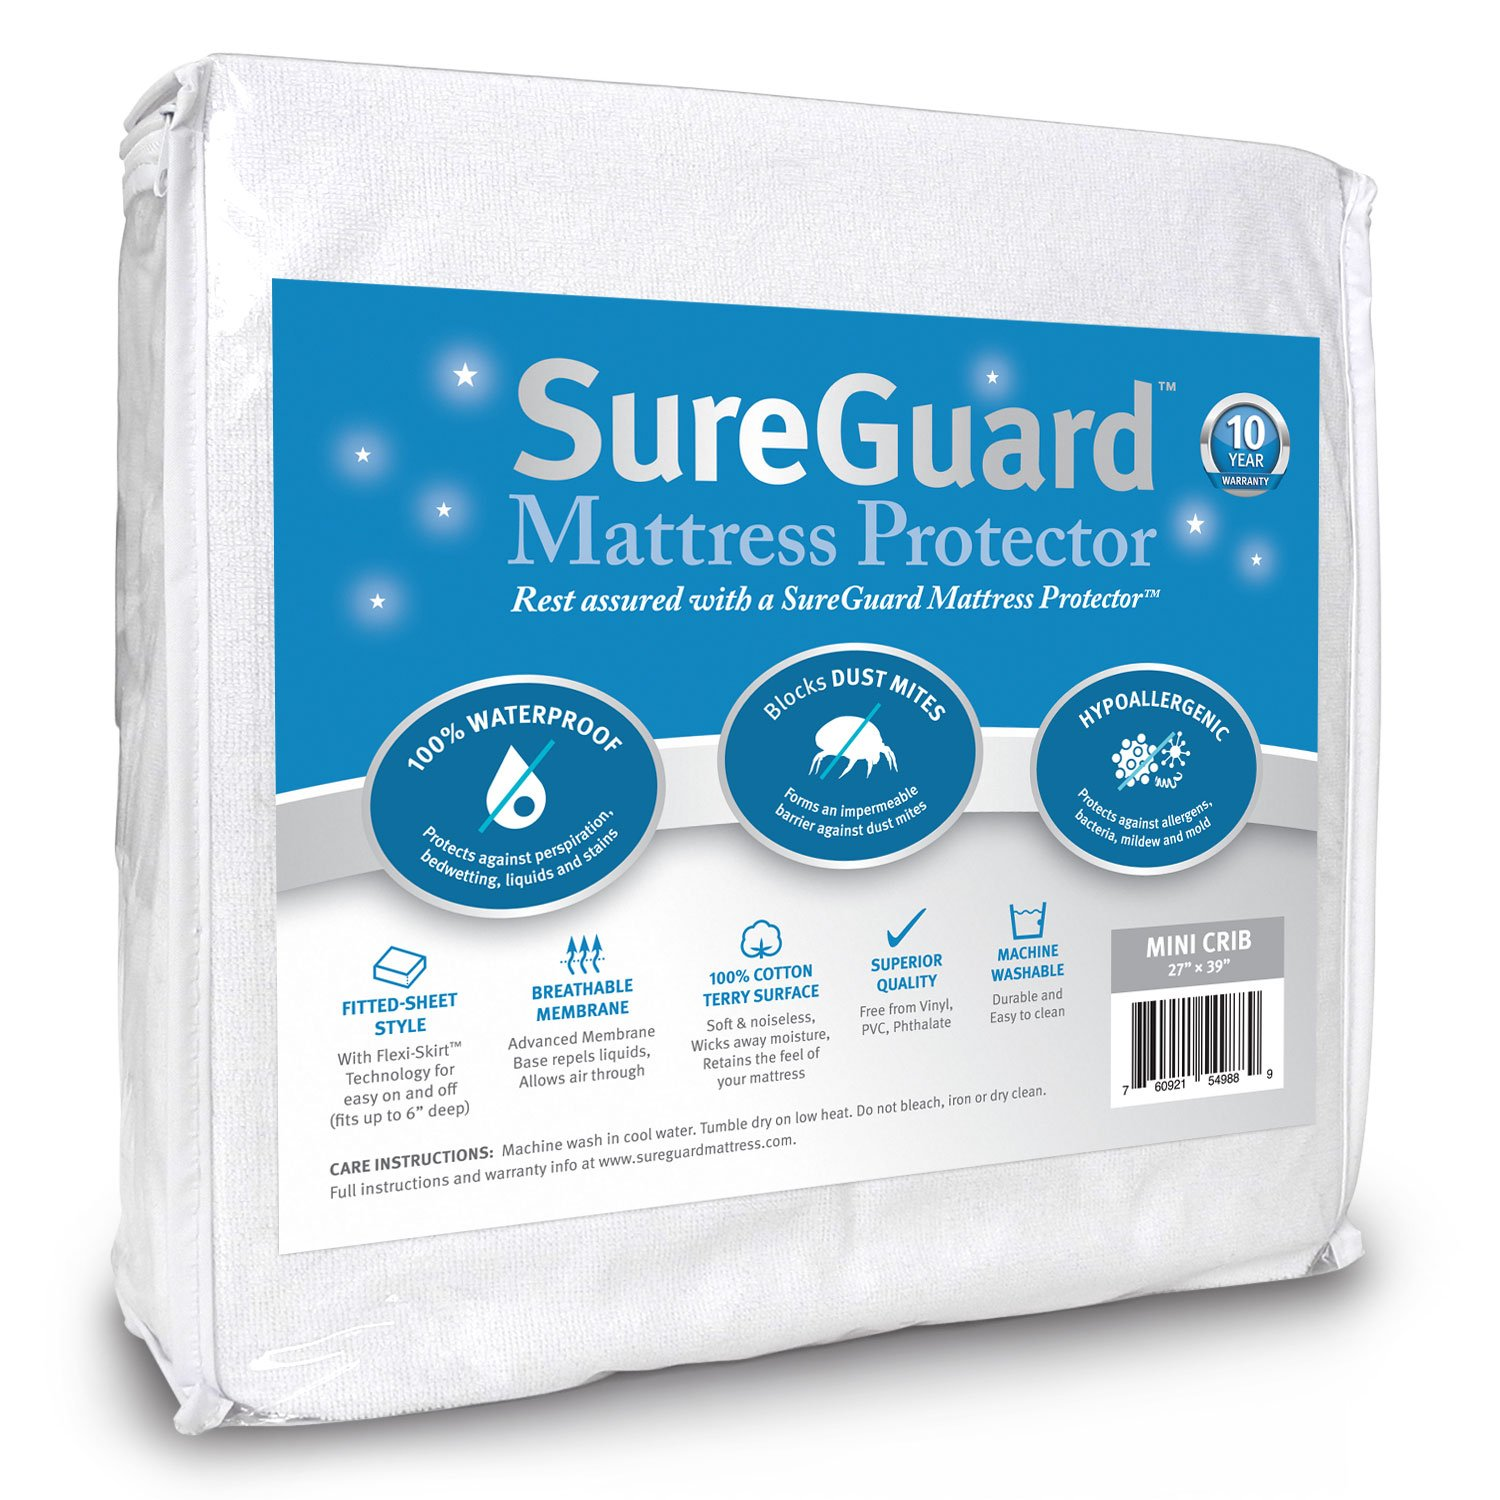 Mini Crib SureGuard Mattress Protector - 100% Waterproof, Hypoallergenic - Premium Fitted Cotton Terry Cover for Portable Pack n Play - 10 Year Warranty by SureGuard Mattress Protectors